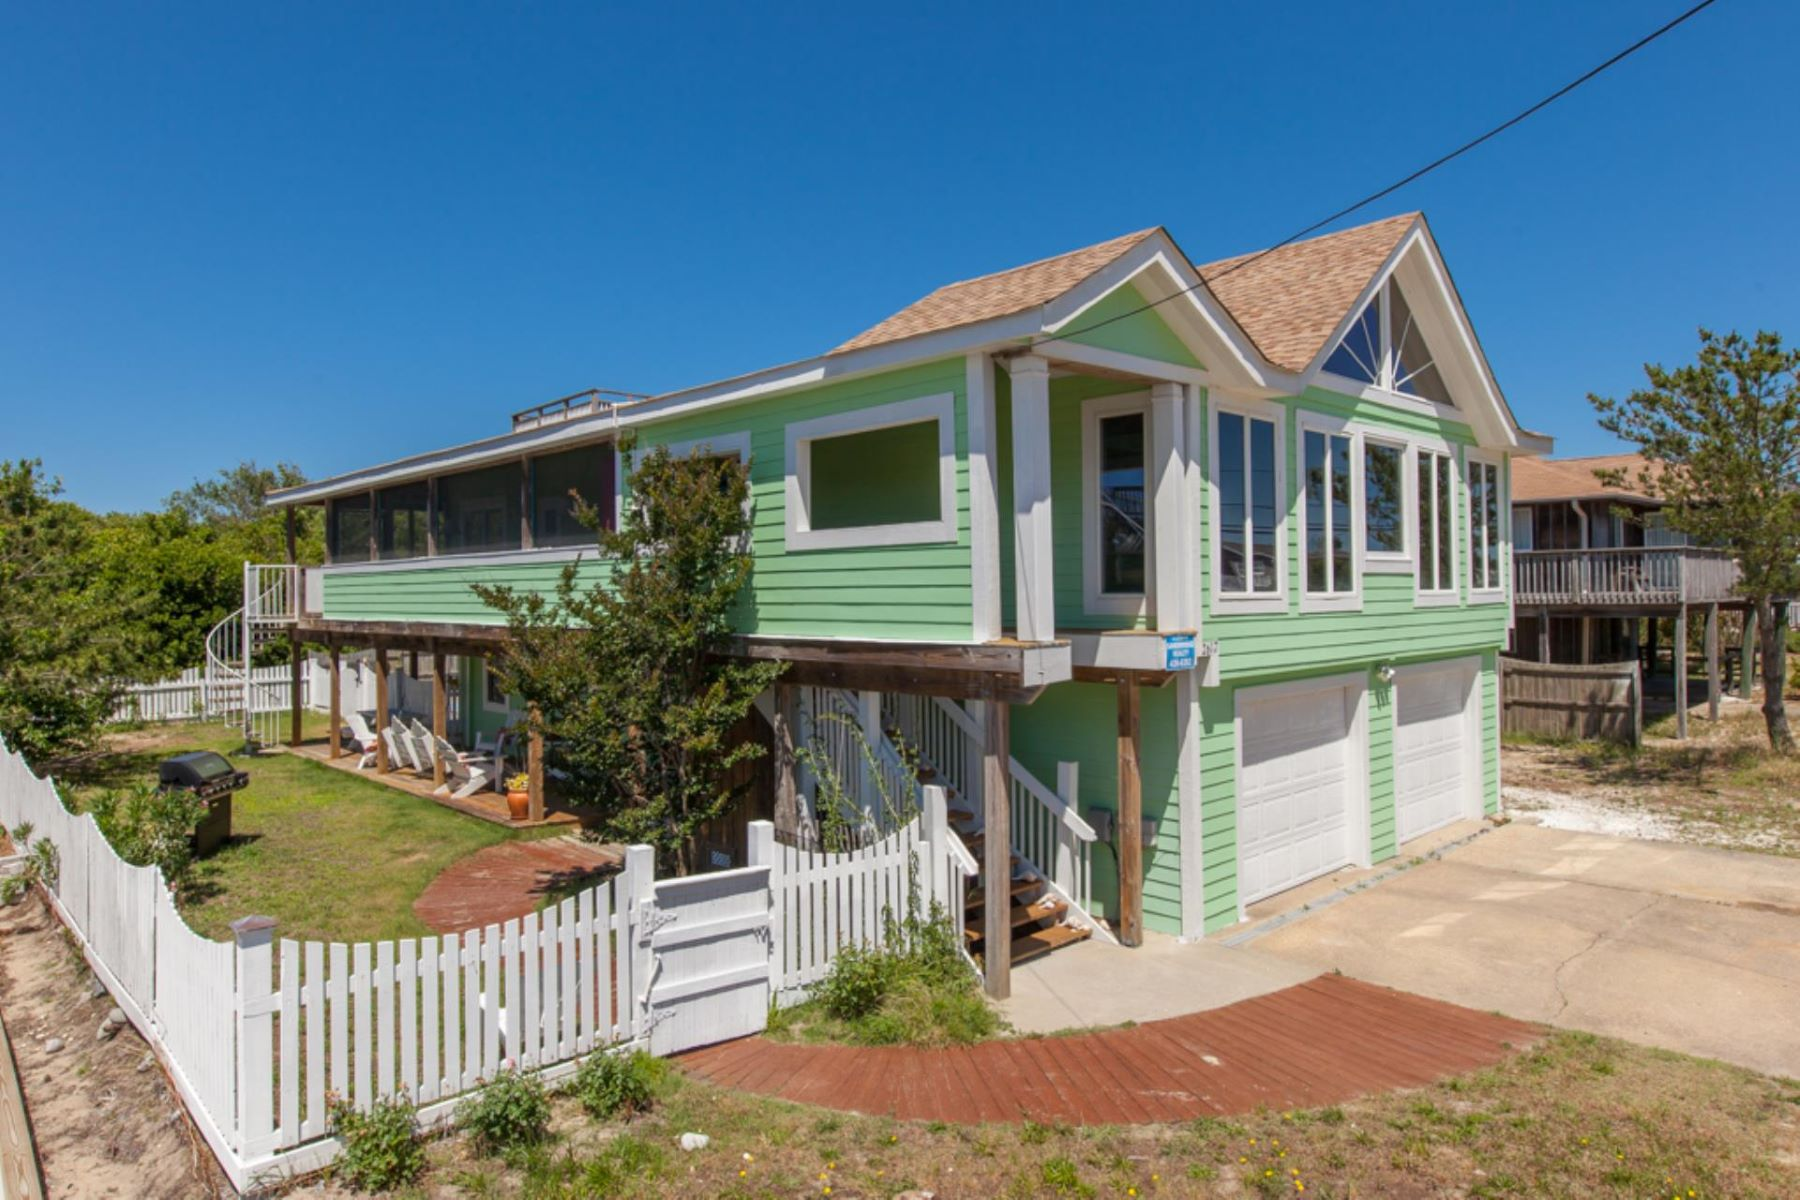 Casa Unifamiliar por un Venta en C-Monster - Sandbridge Beach 2617 Sandpiper Road, Virginia Beach, Virginia, 23456 Estados Unidos